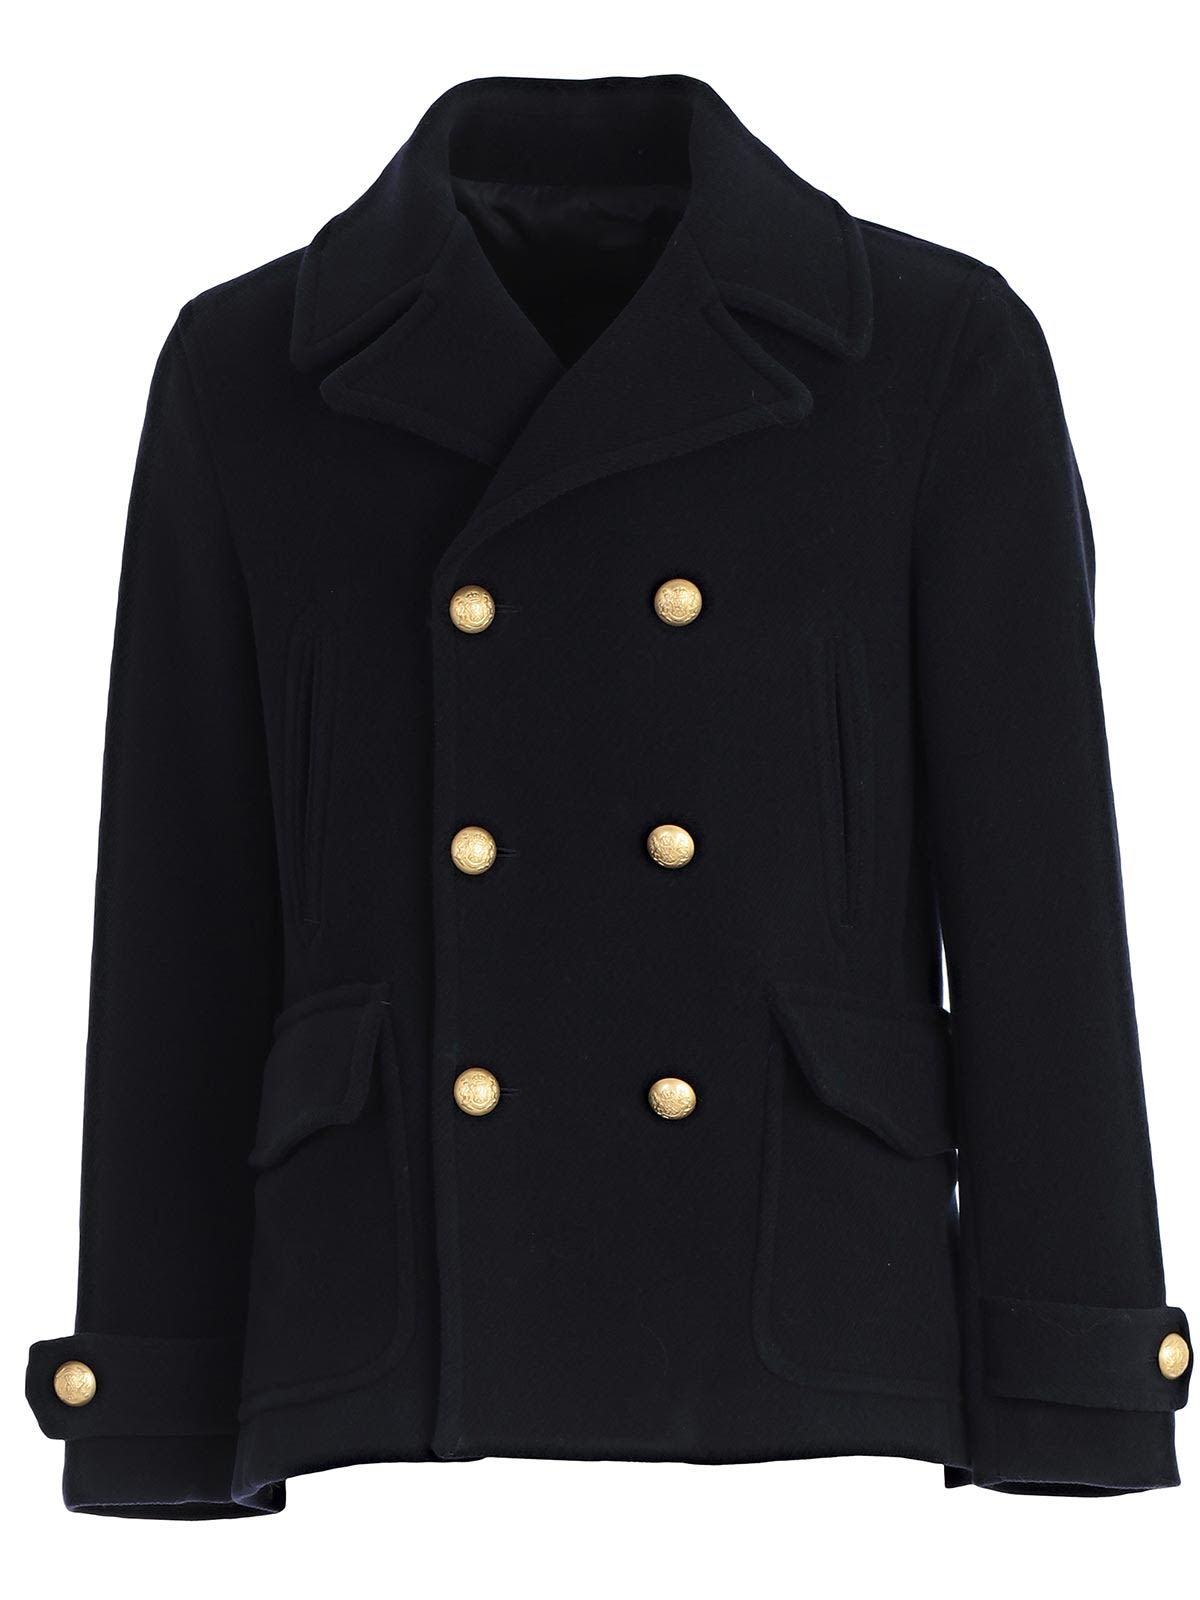 BRIAN DALES DOUBLE BREASTED PEA COAT